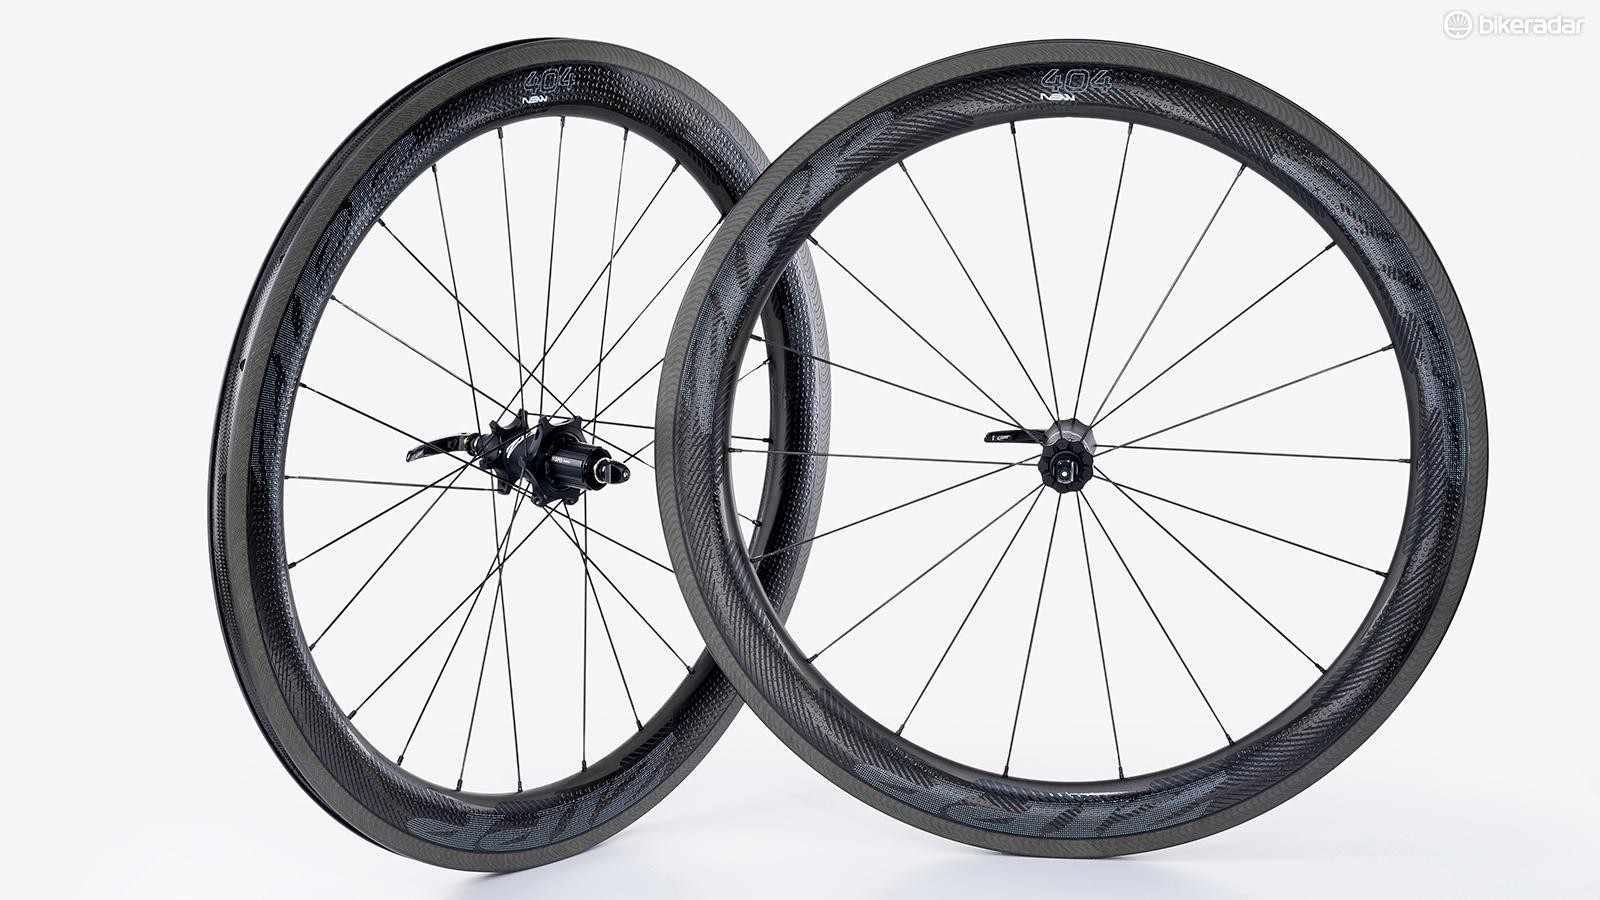 With its 58mm rim, Zipp's 404 NSW is a versatile wheel